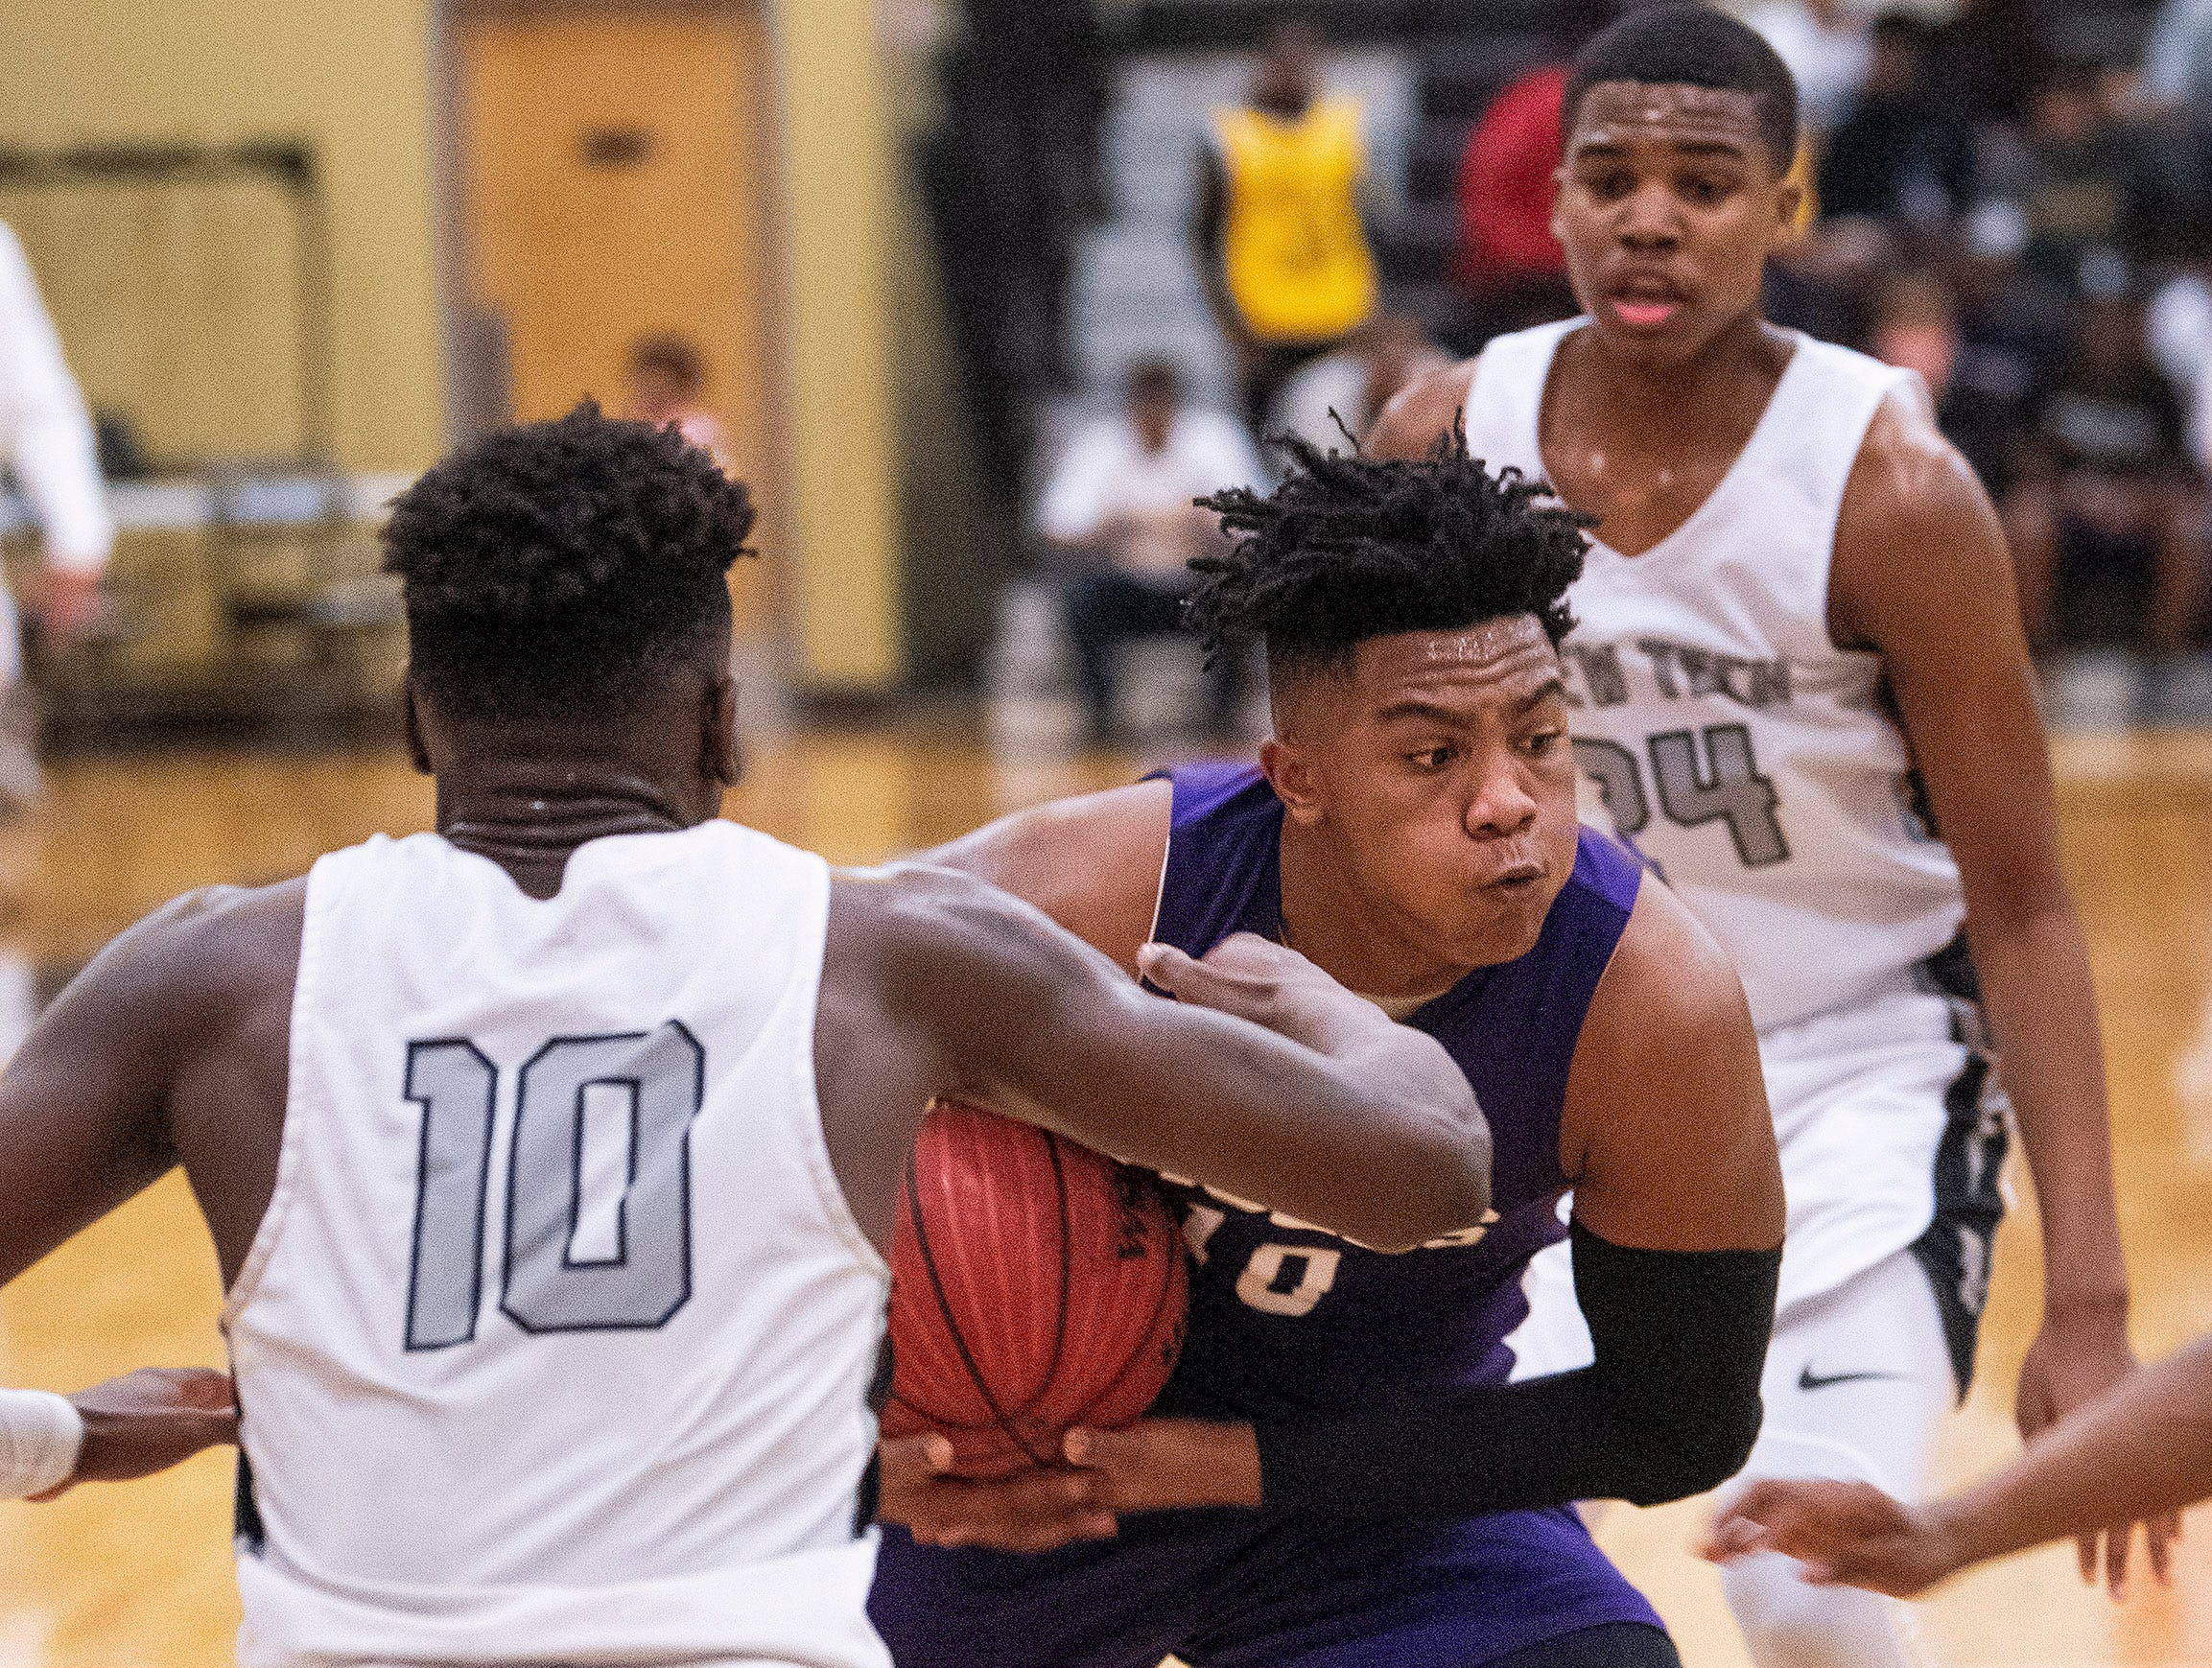 Tallassee's Tavarious Griffin (10) is double teamed by Brewbaker Tech's Desmond Williams (10) and Justin Johnson (24) at the BrewTech campus in Montgomery, Ala., on Thursday February 7, 2019.